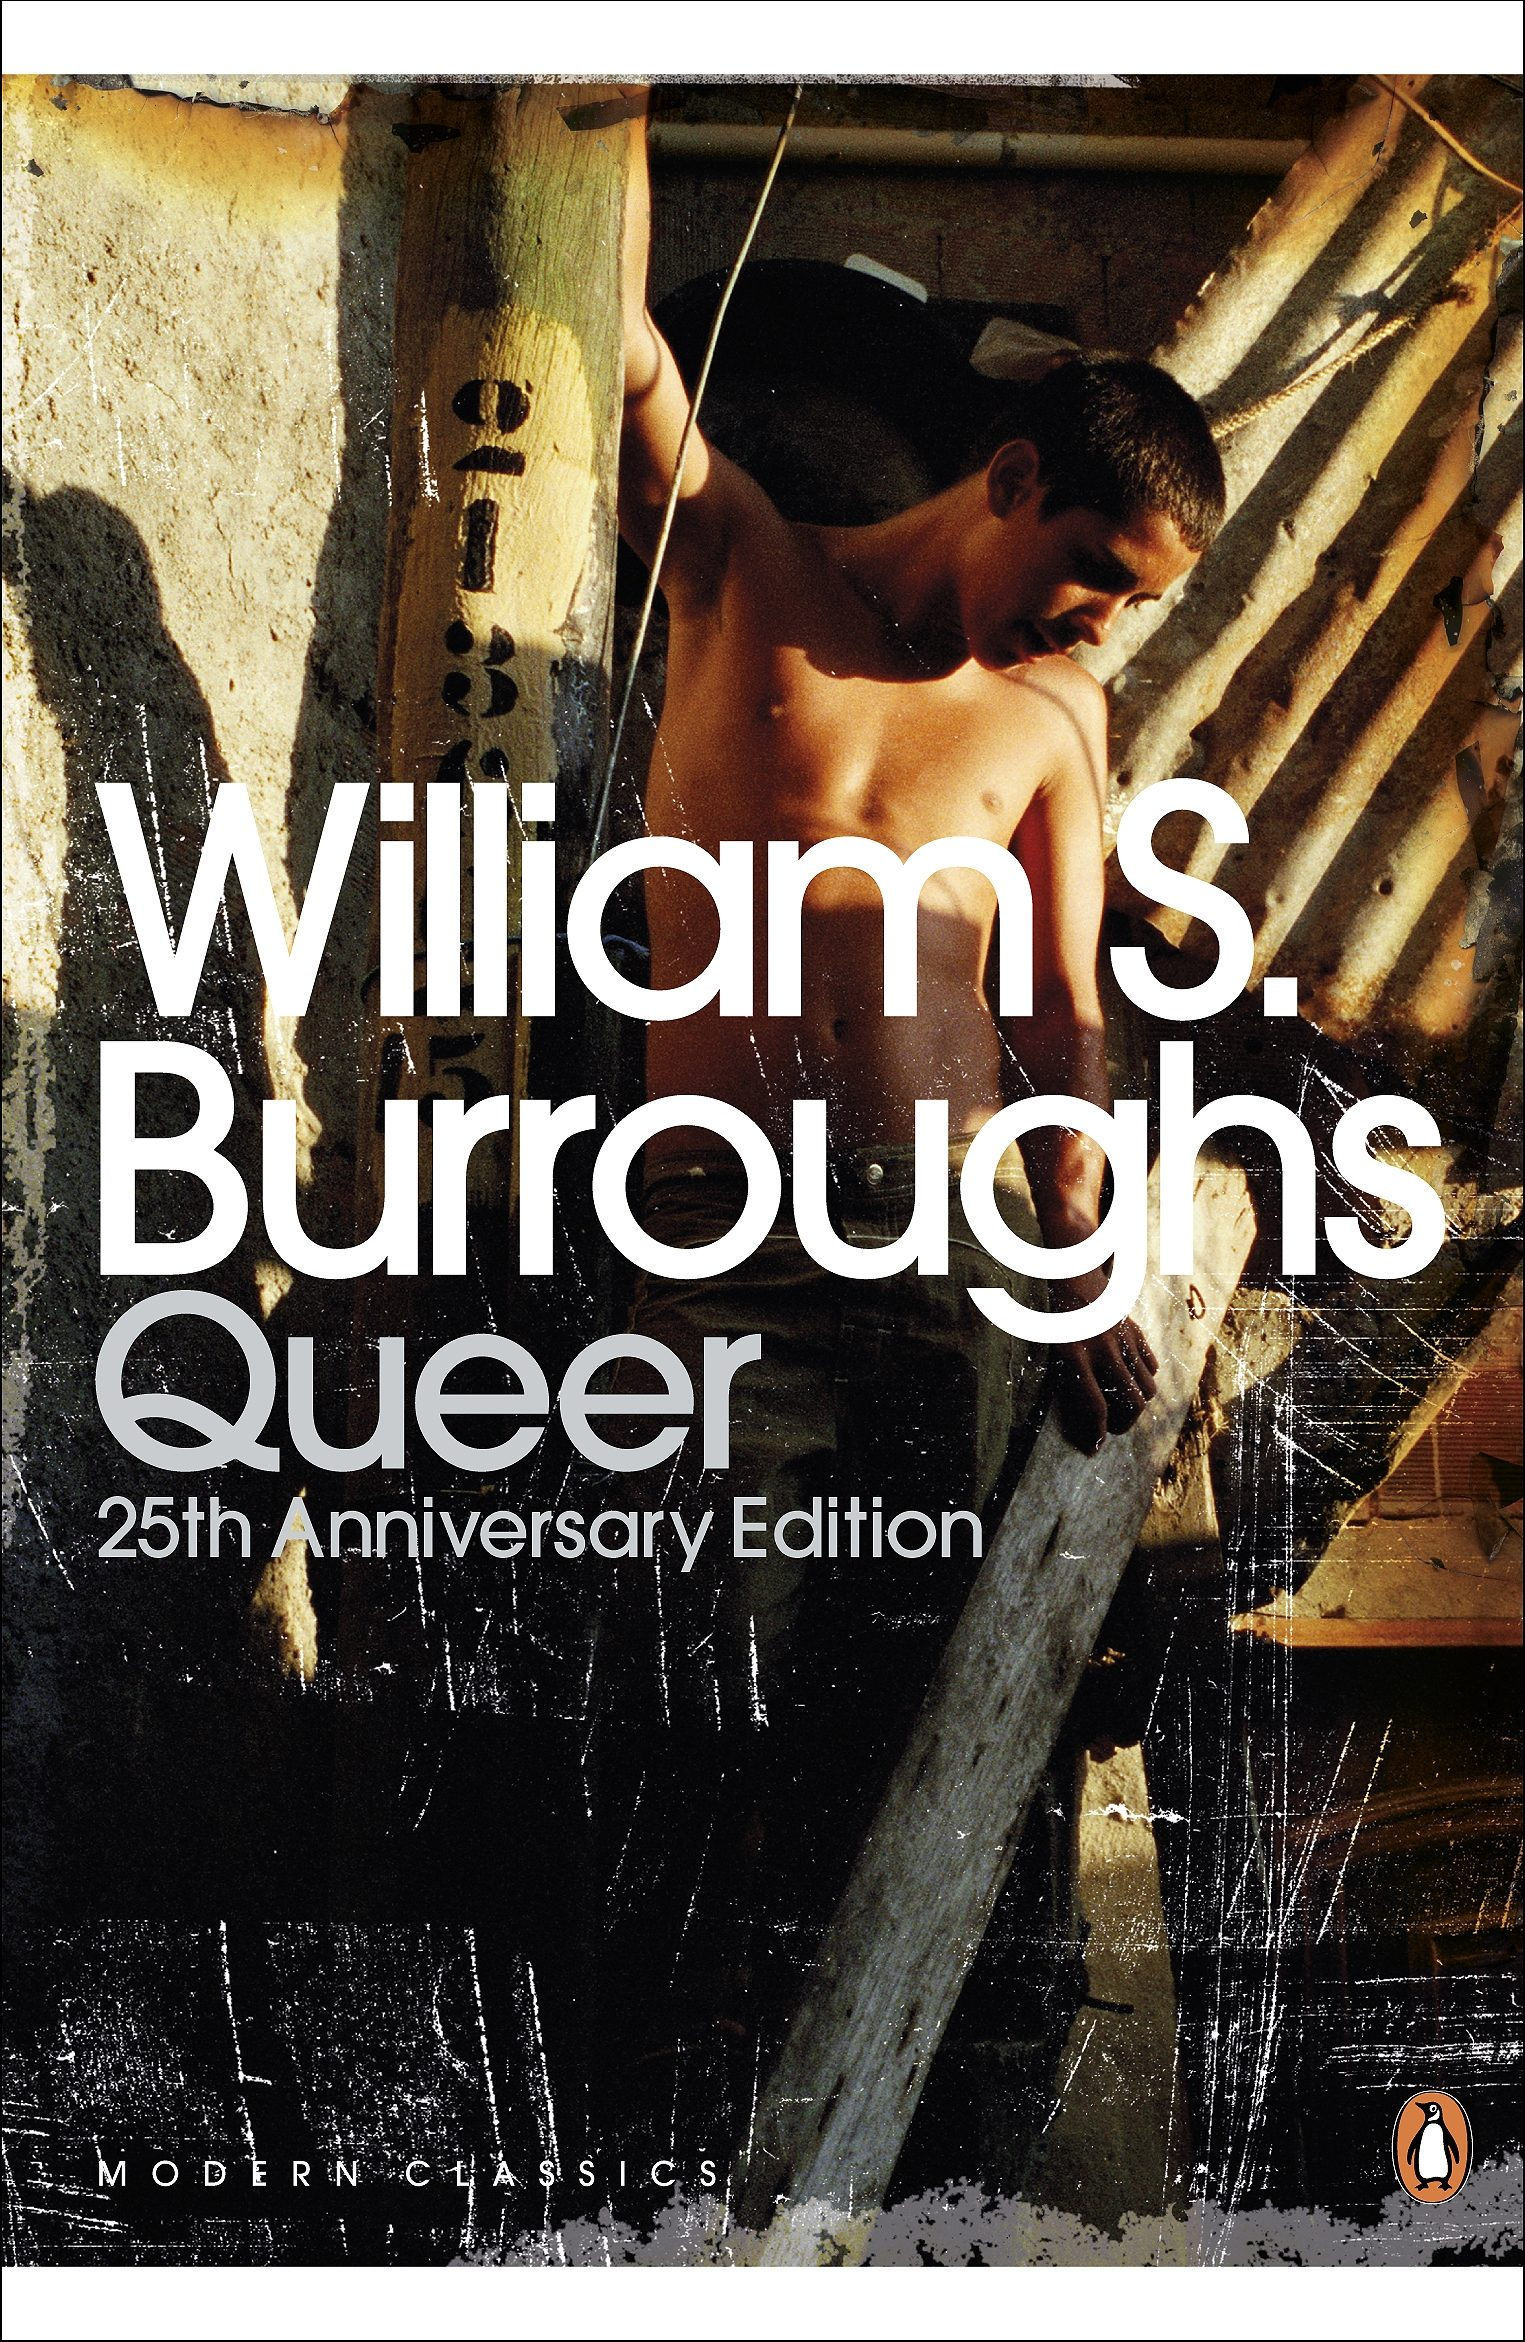 Arte Queer Pdf Queer Ebook William S Burroughs Descargar Libro Pdf O Epub 9780141975665